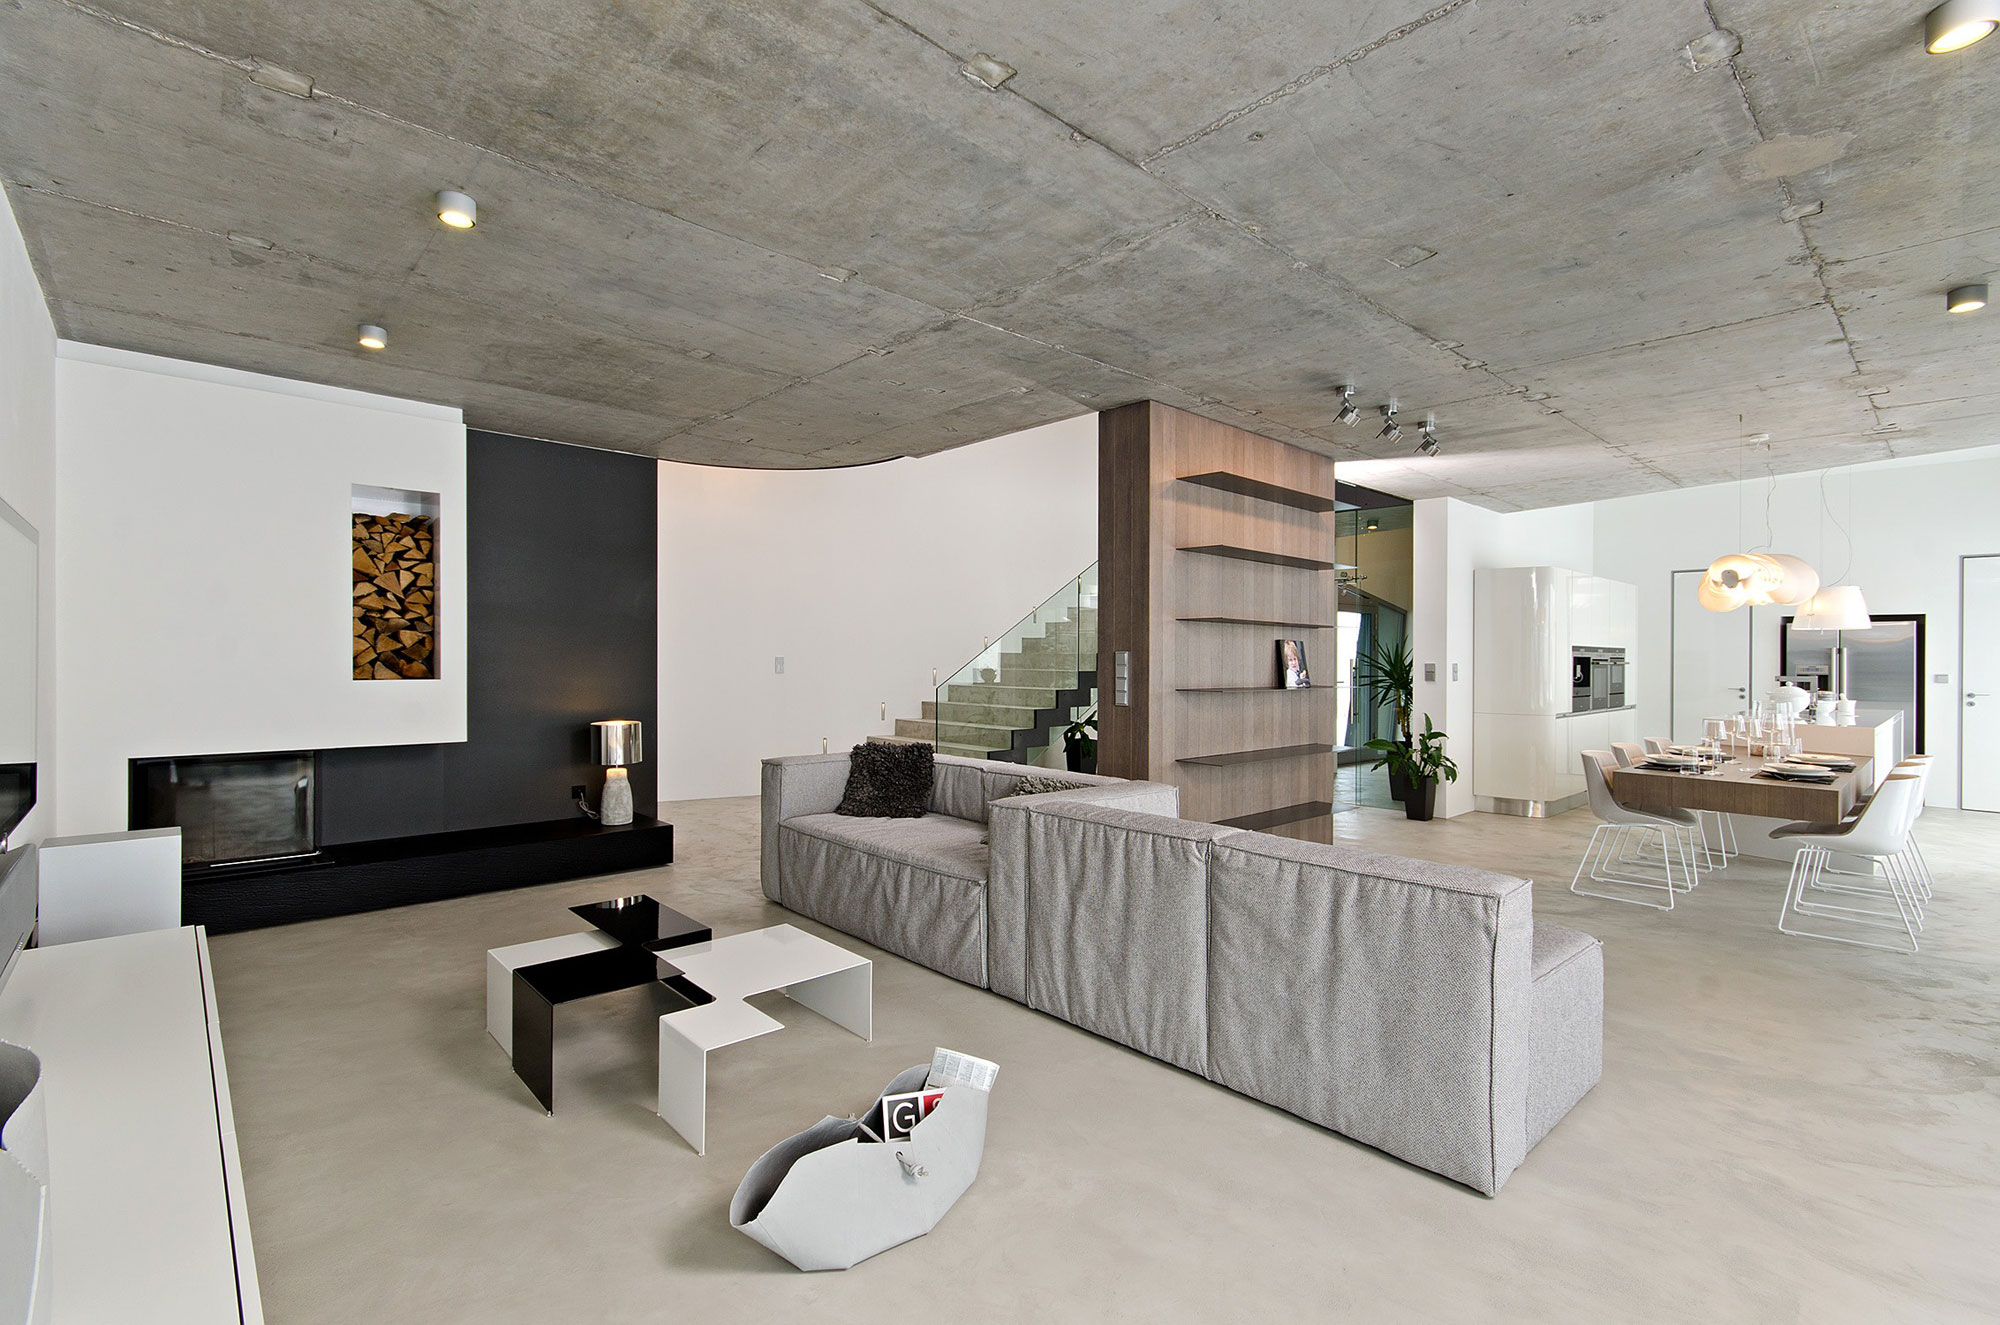 Concrete Interior by oooox (1)